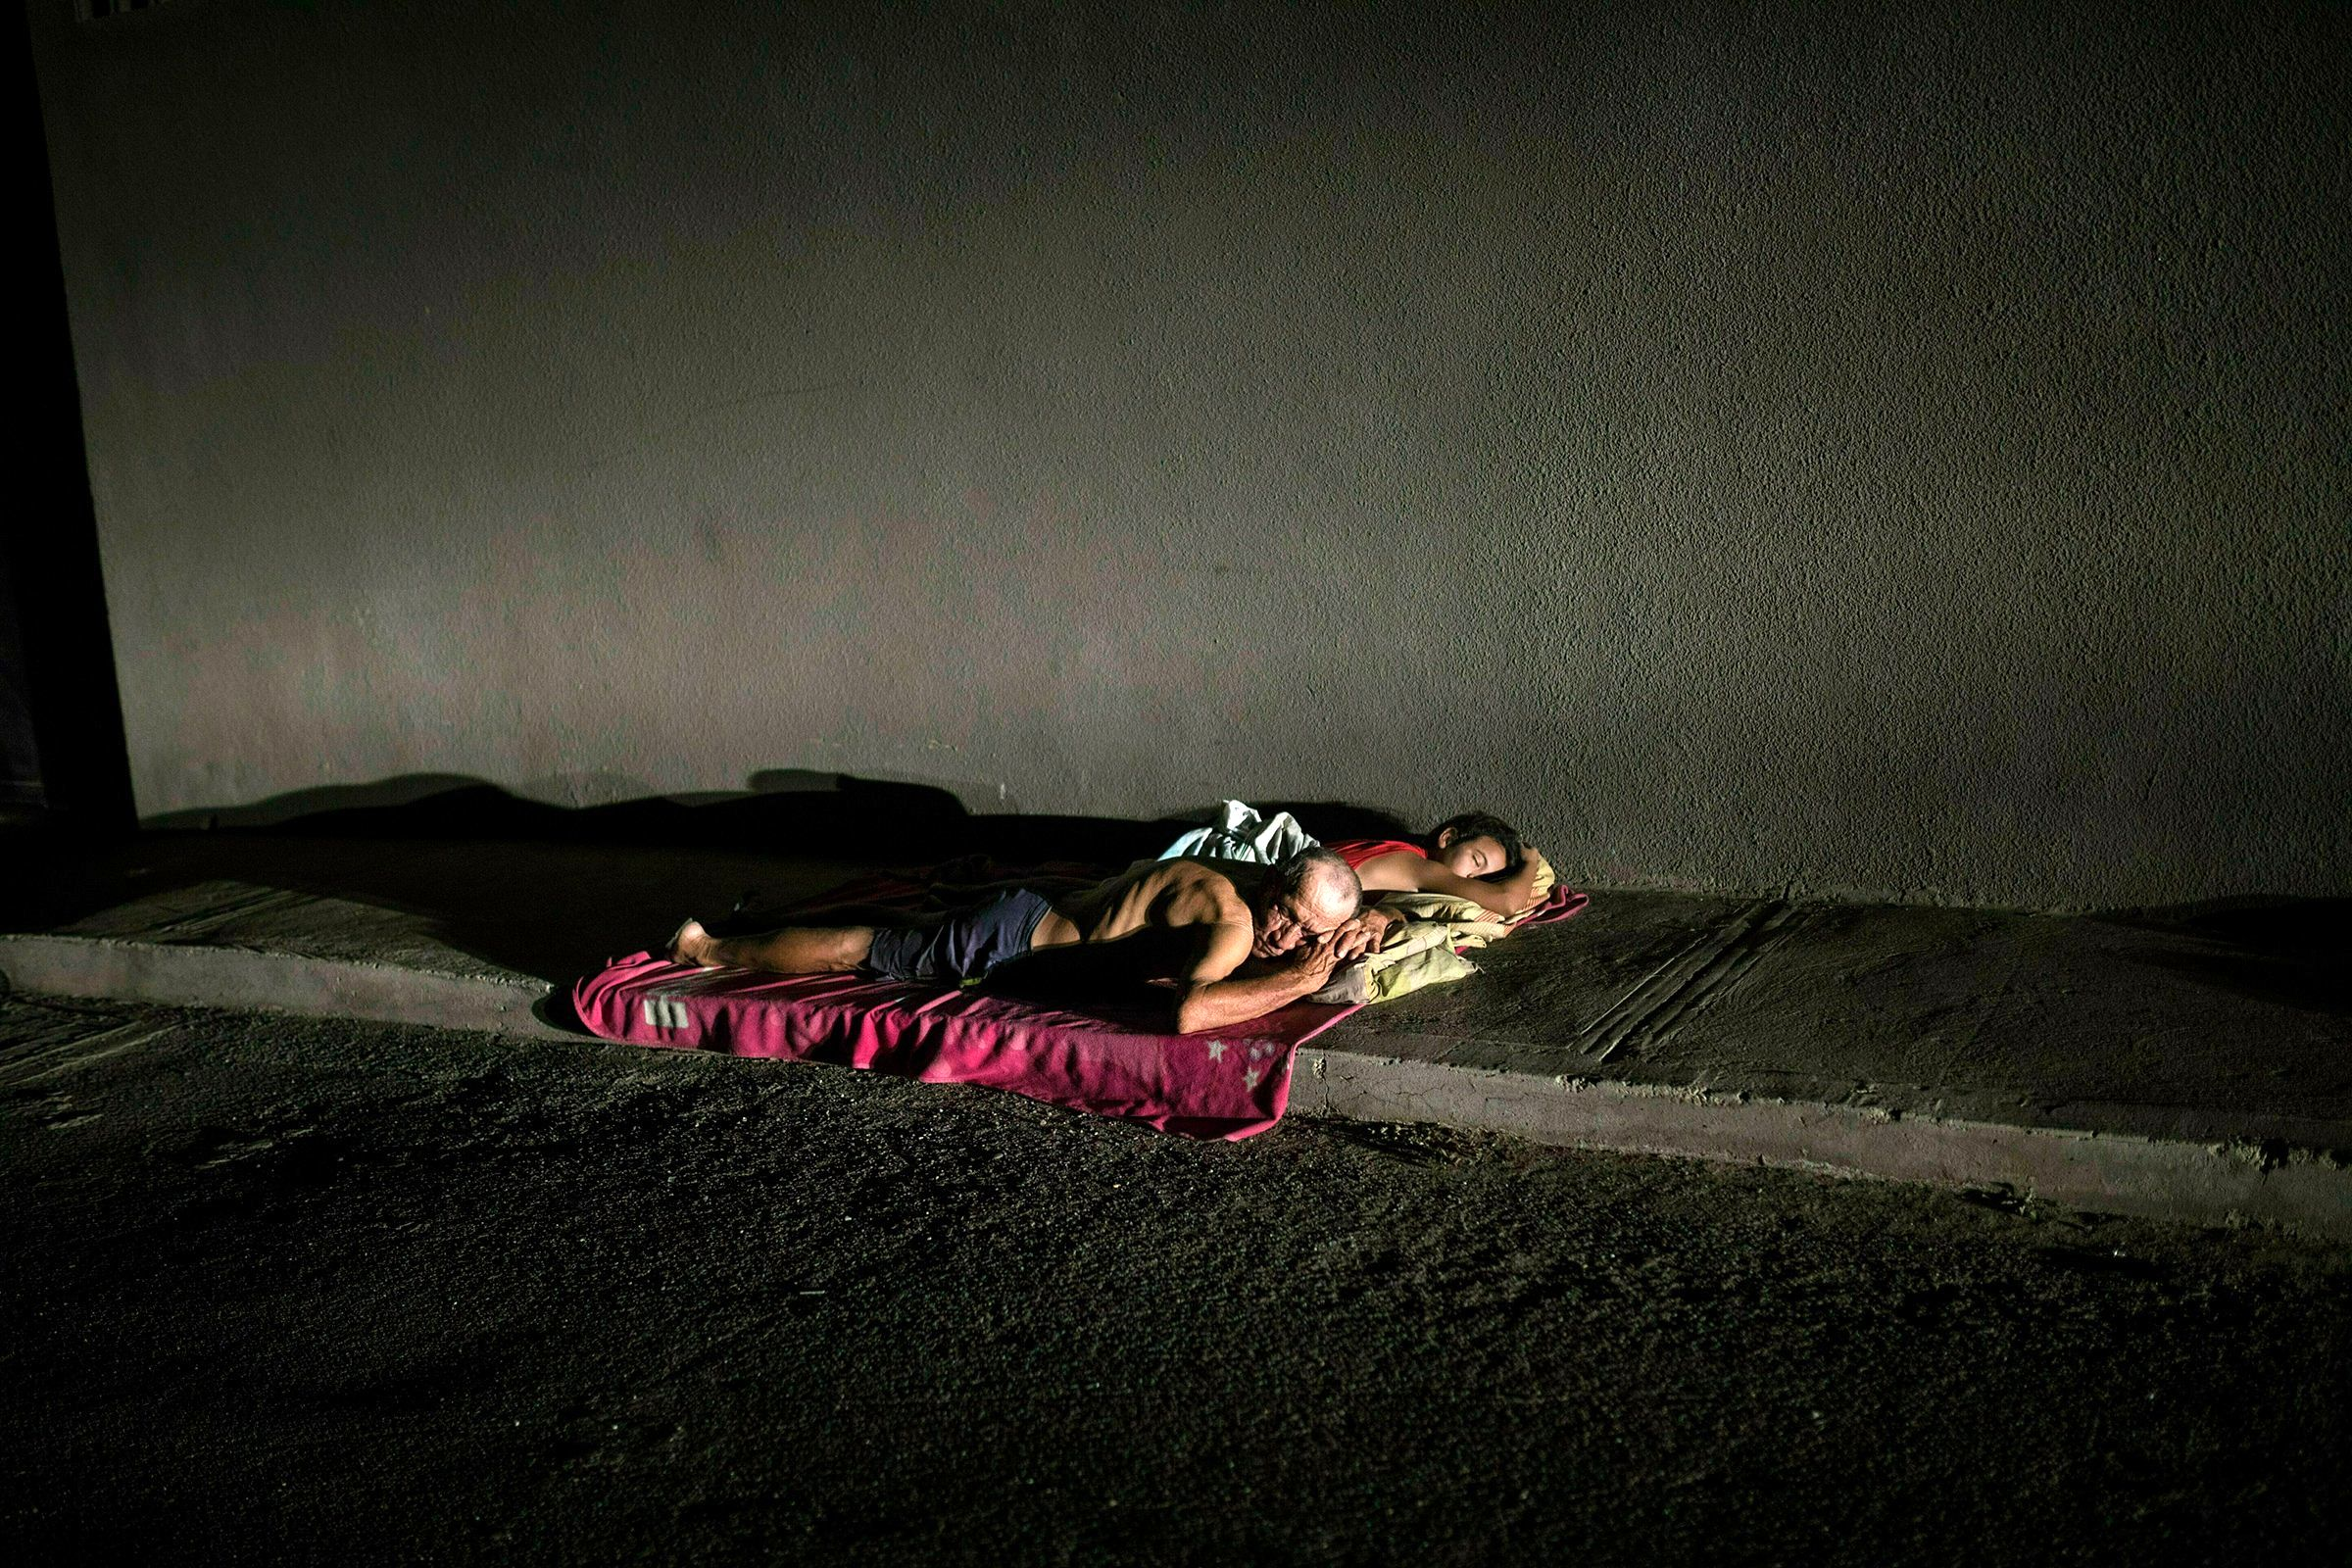 Due to a lack of electricity in their homes that prevents them from running air conditioners and fans, people sleep on the sidewalk to deal with the sweltering heat during a blackout in Maracaibo, Venezuela, on May 15.